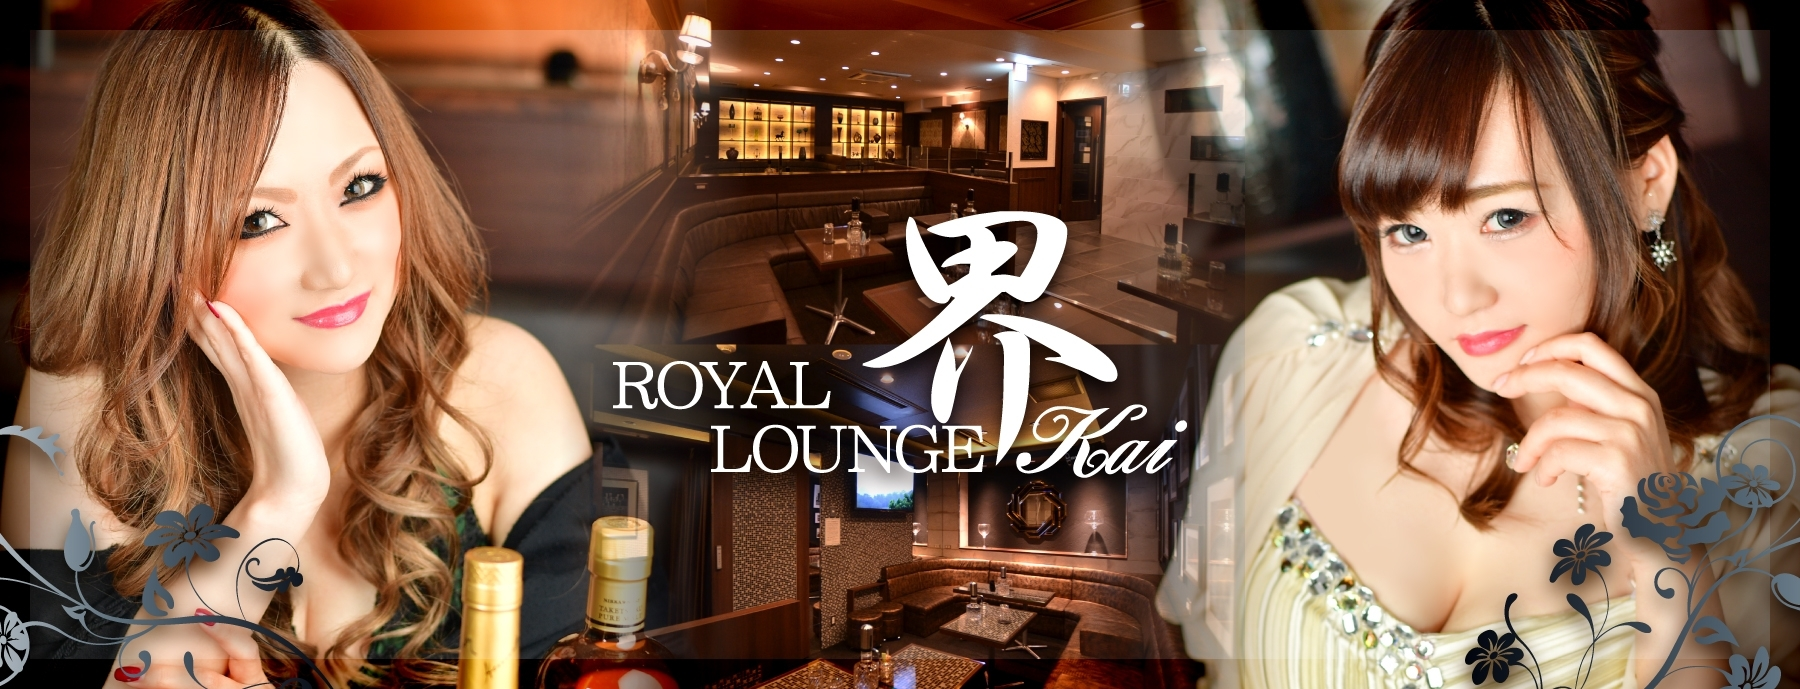 ROYAL LOUNGE  界 〜Kai〜